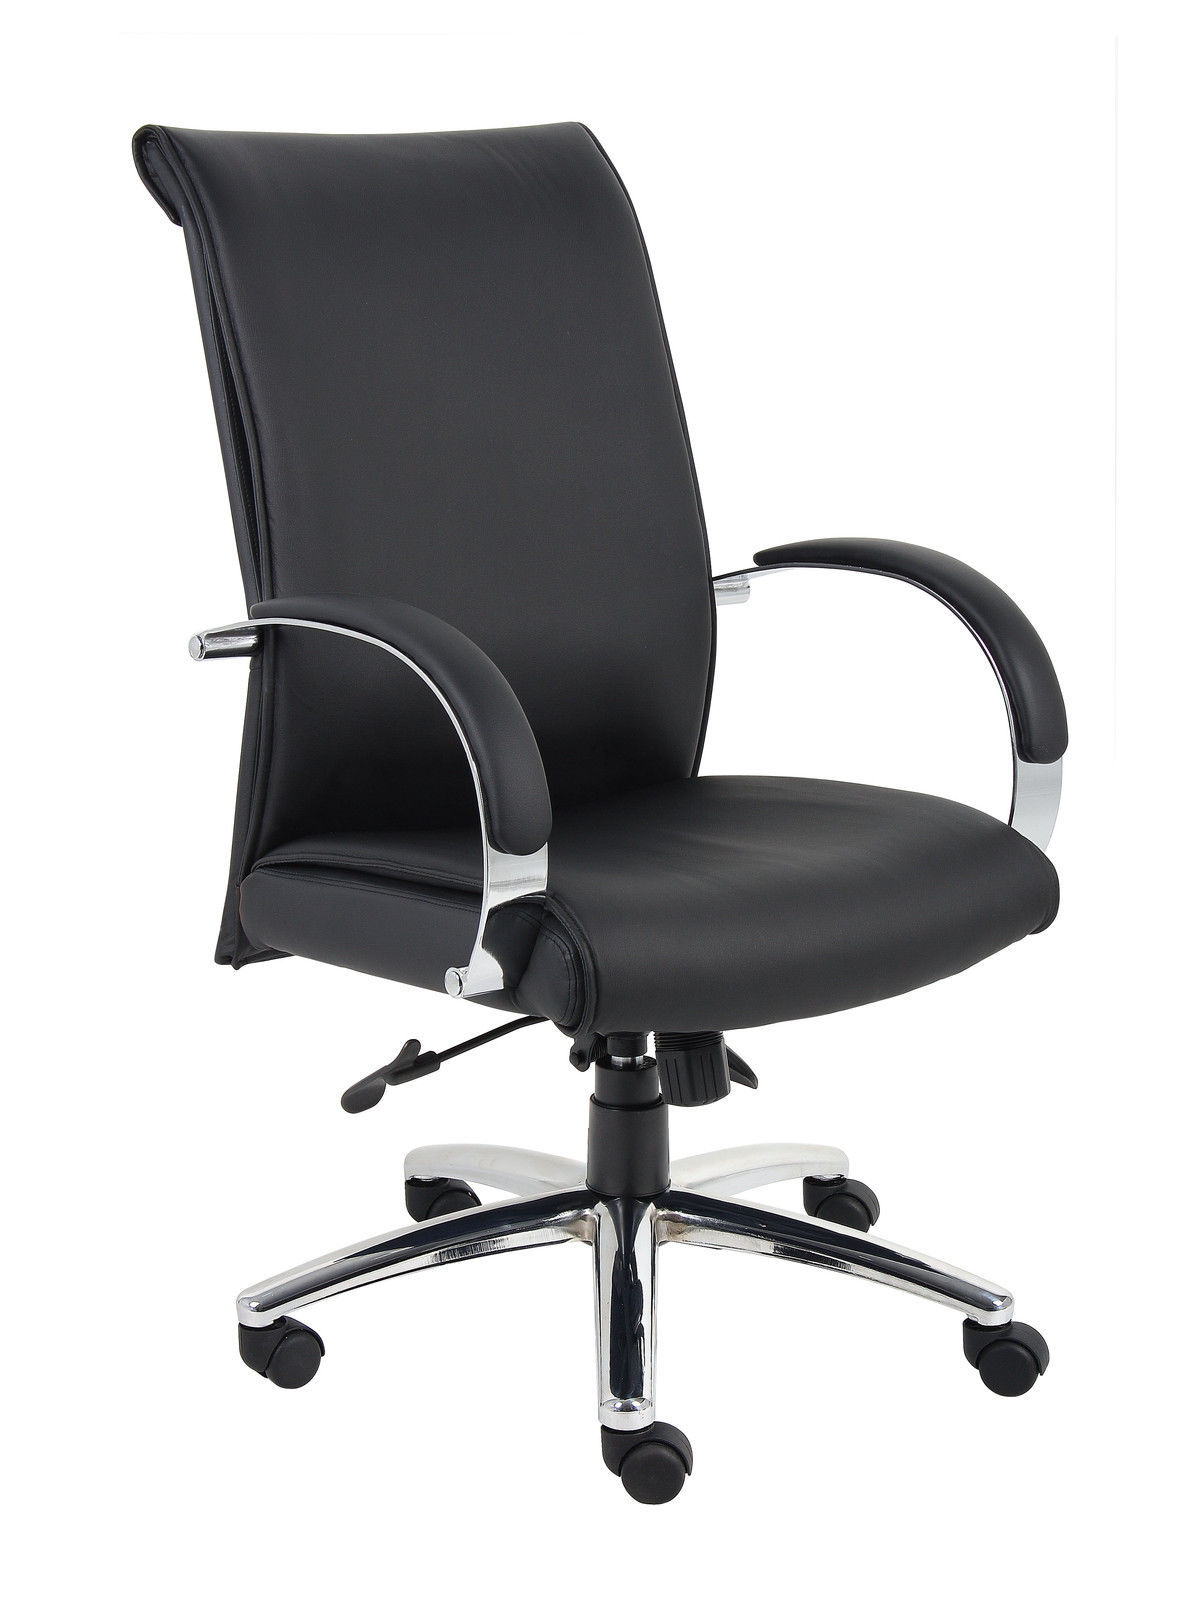 black caressoftplus executive series desk chair with wheels chairs